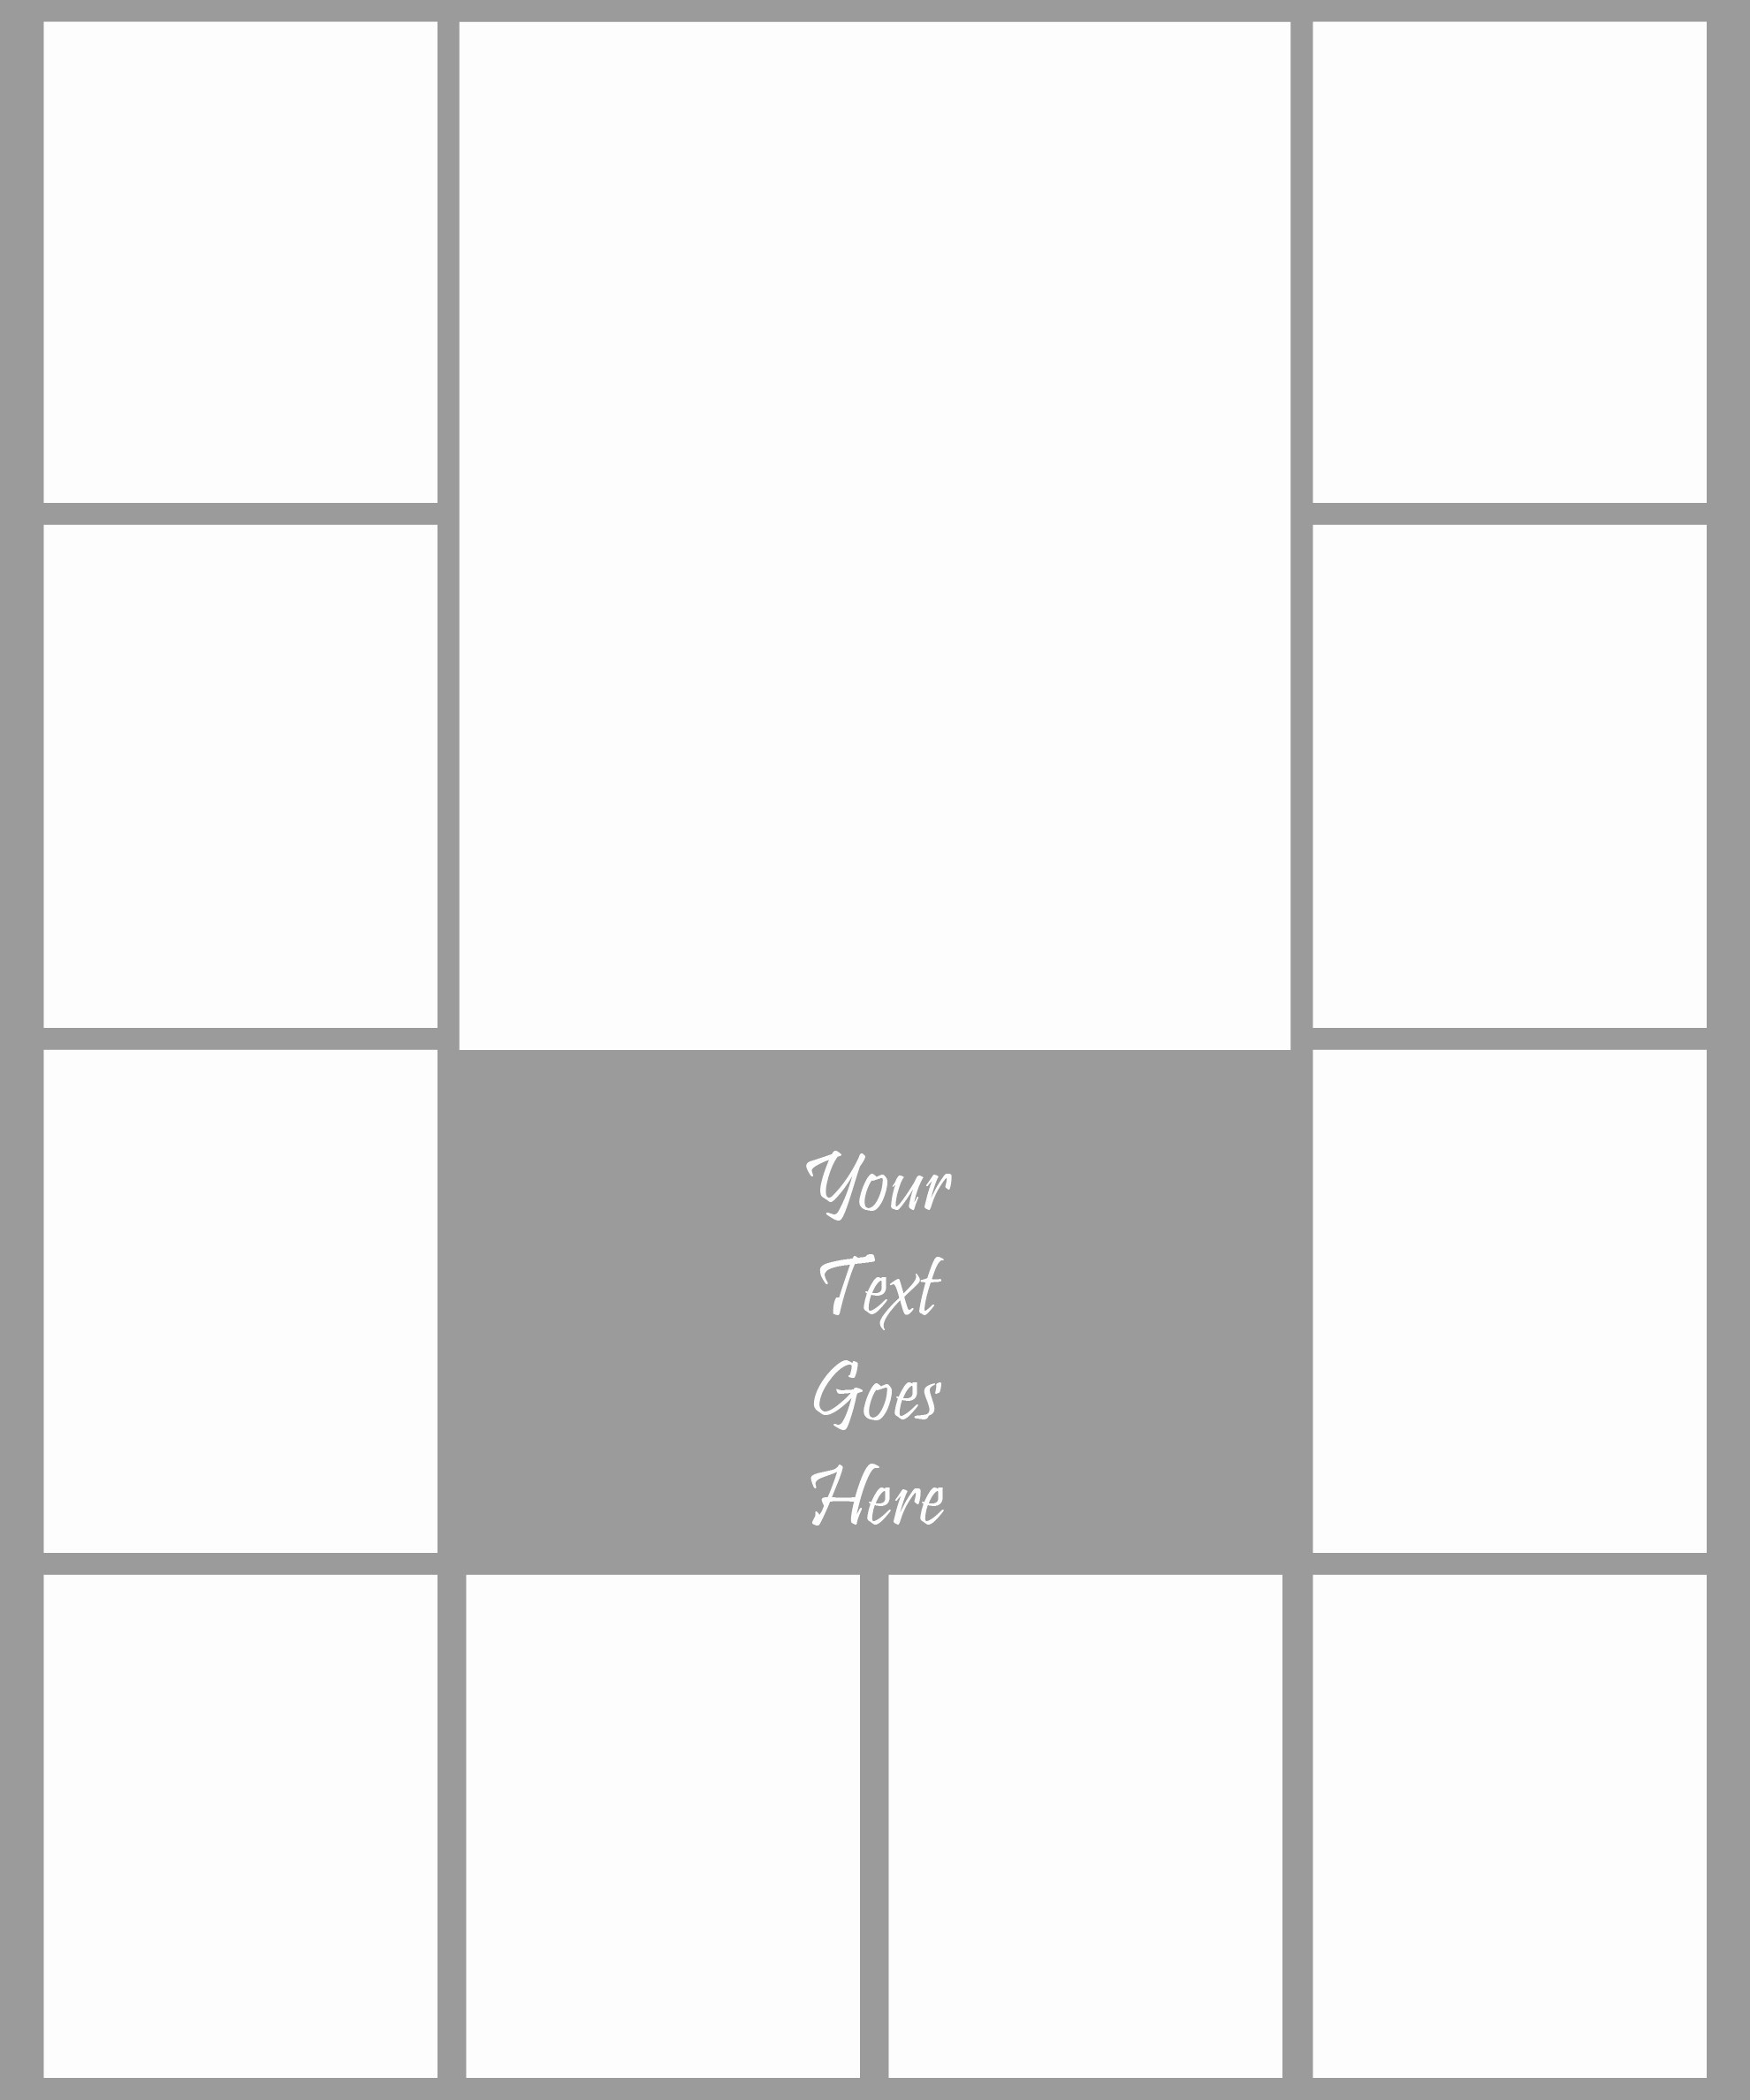 Picture Collage Template for Word New Collage Layout Template Choice Image Template